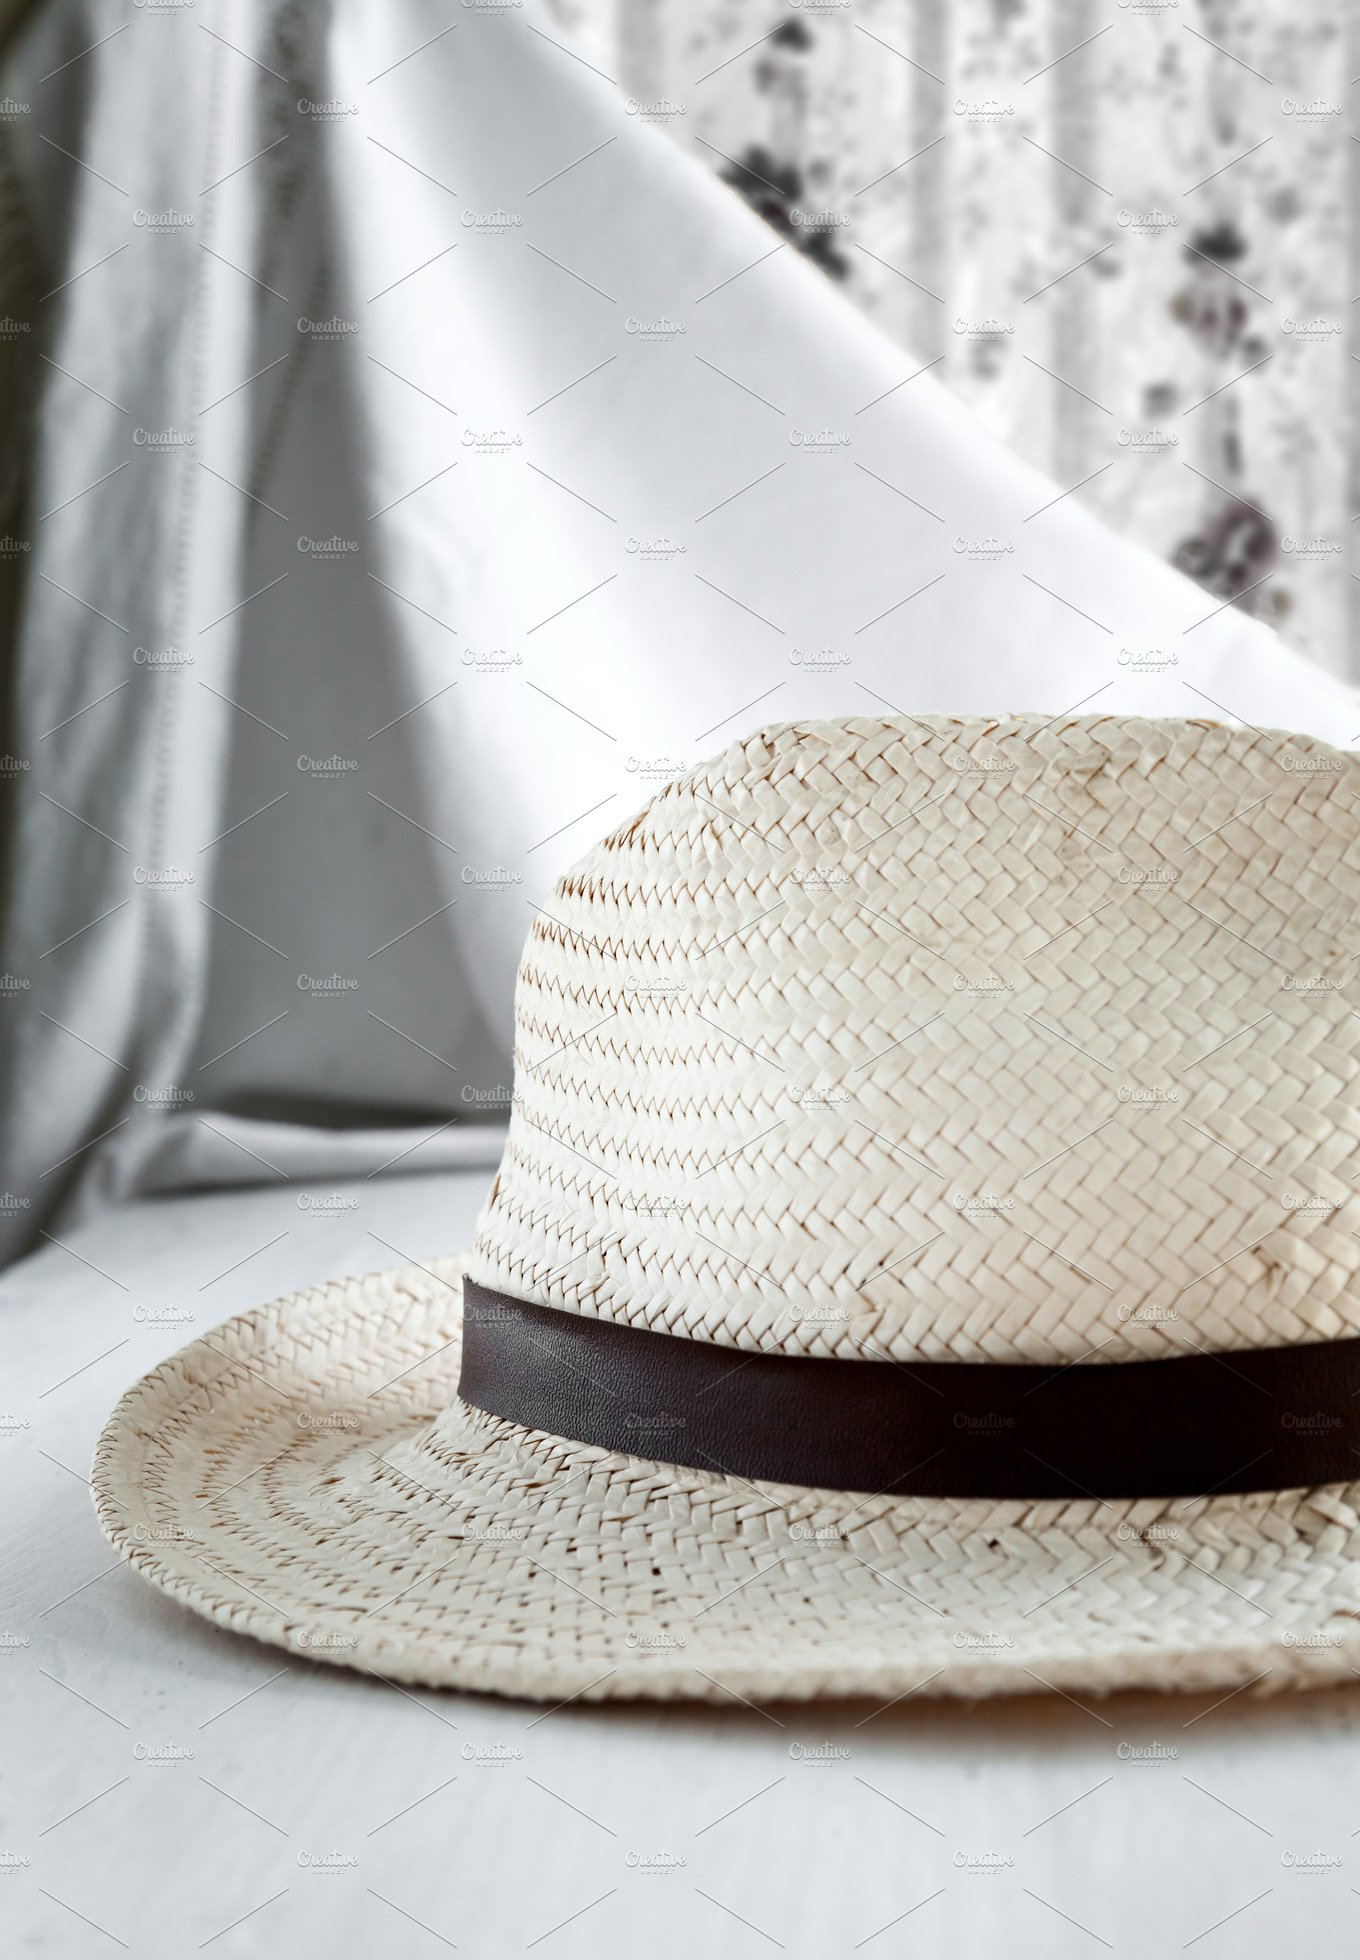 Straw hat on white table beauty fashion photos for Beauty table style css